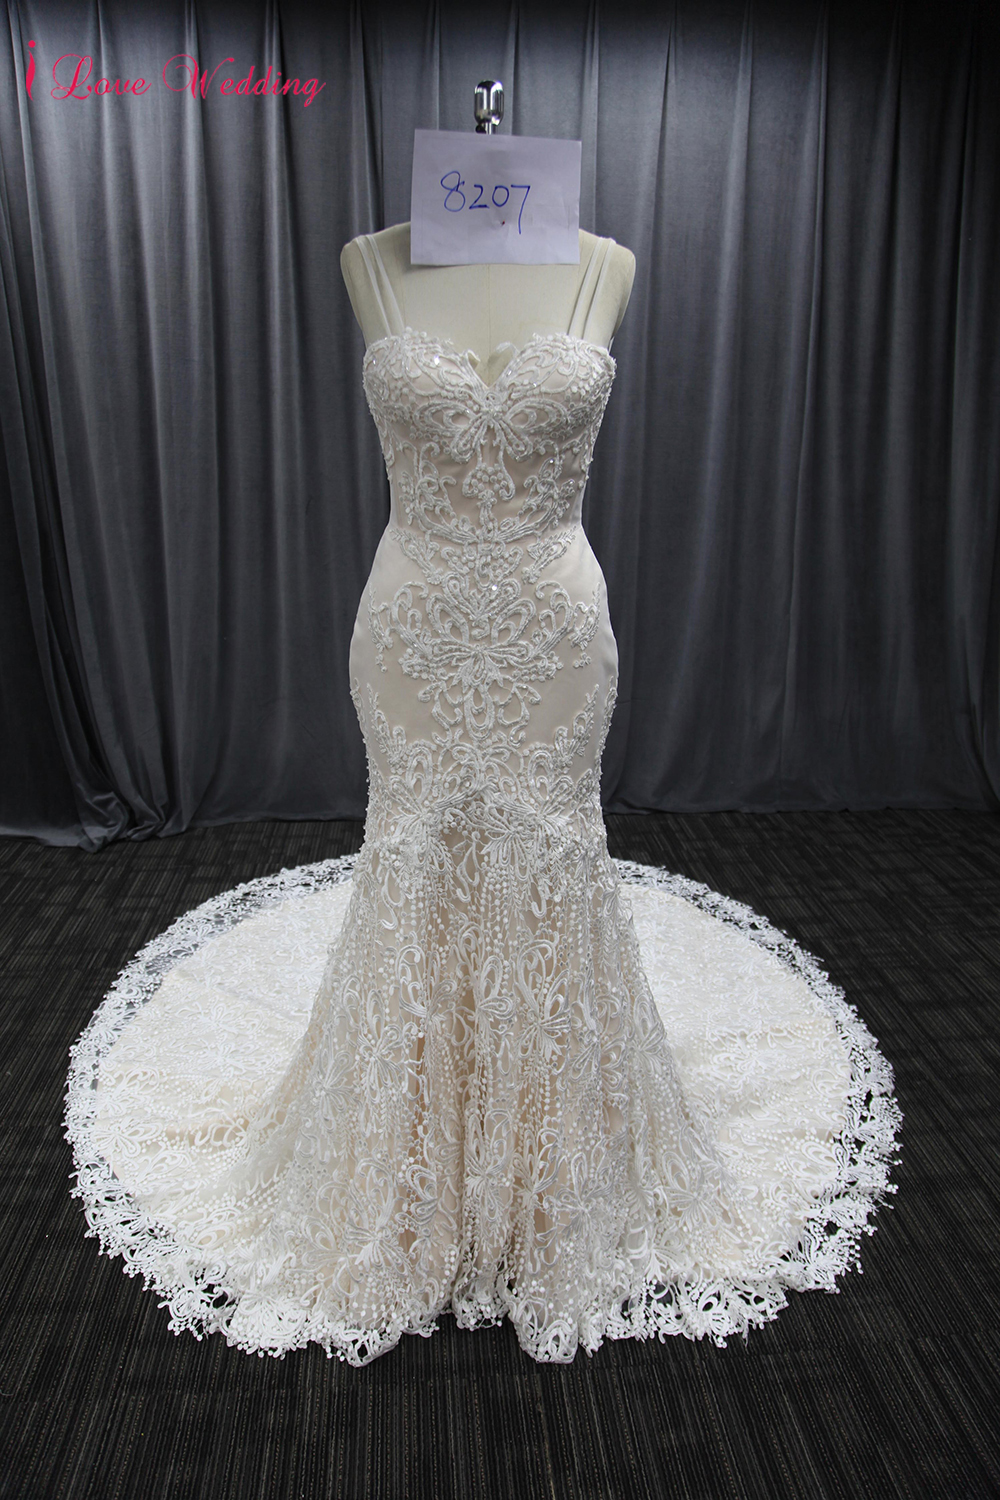 2019 Vintage Lace Wedding Gown Sweetheart Neckline Sexy Backless Bridal Wedding Dresses Long Train Woman Marriage Party Dresses